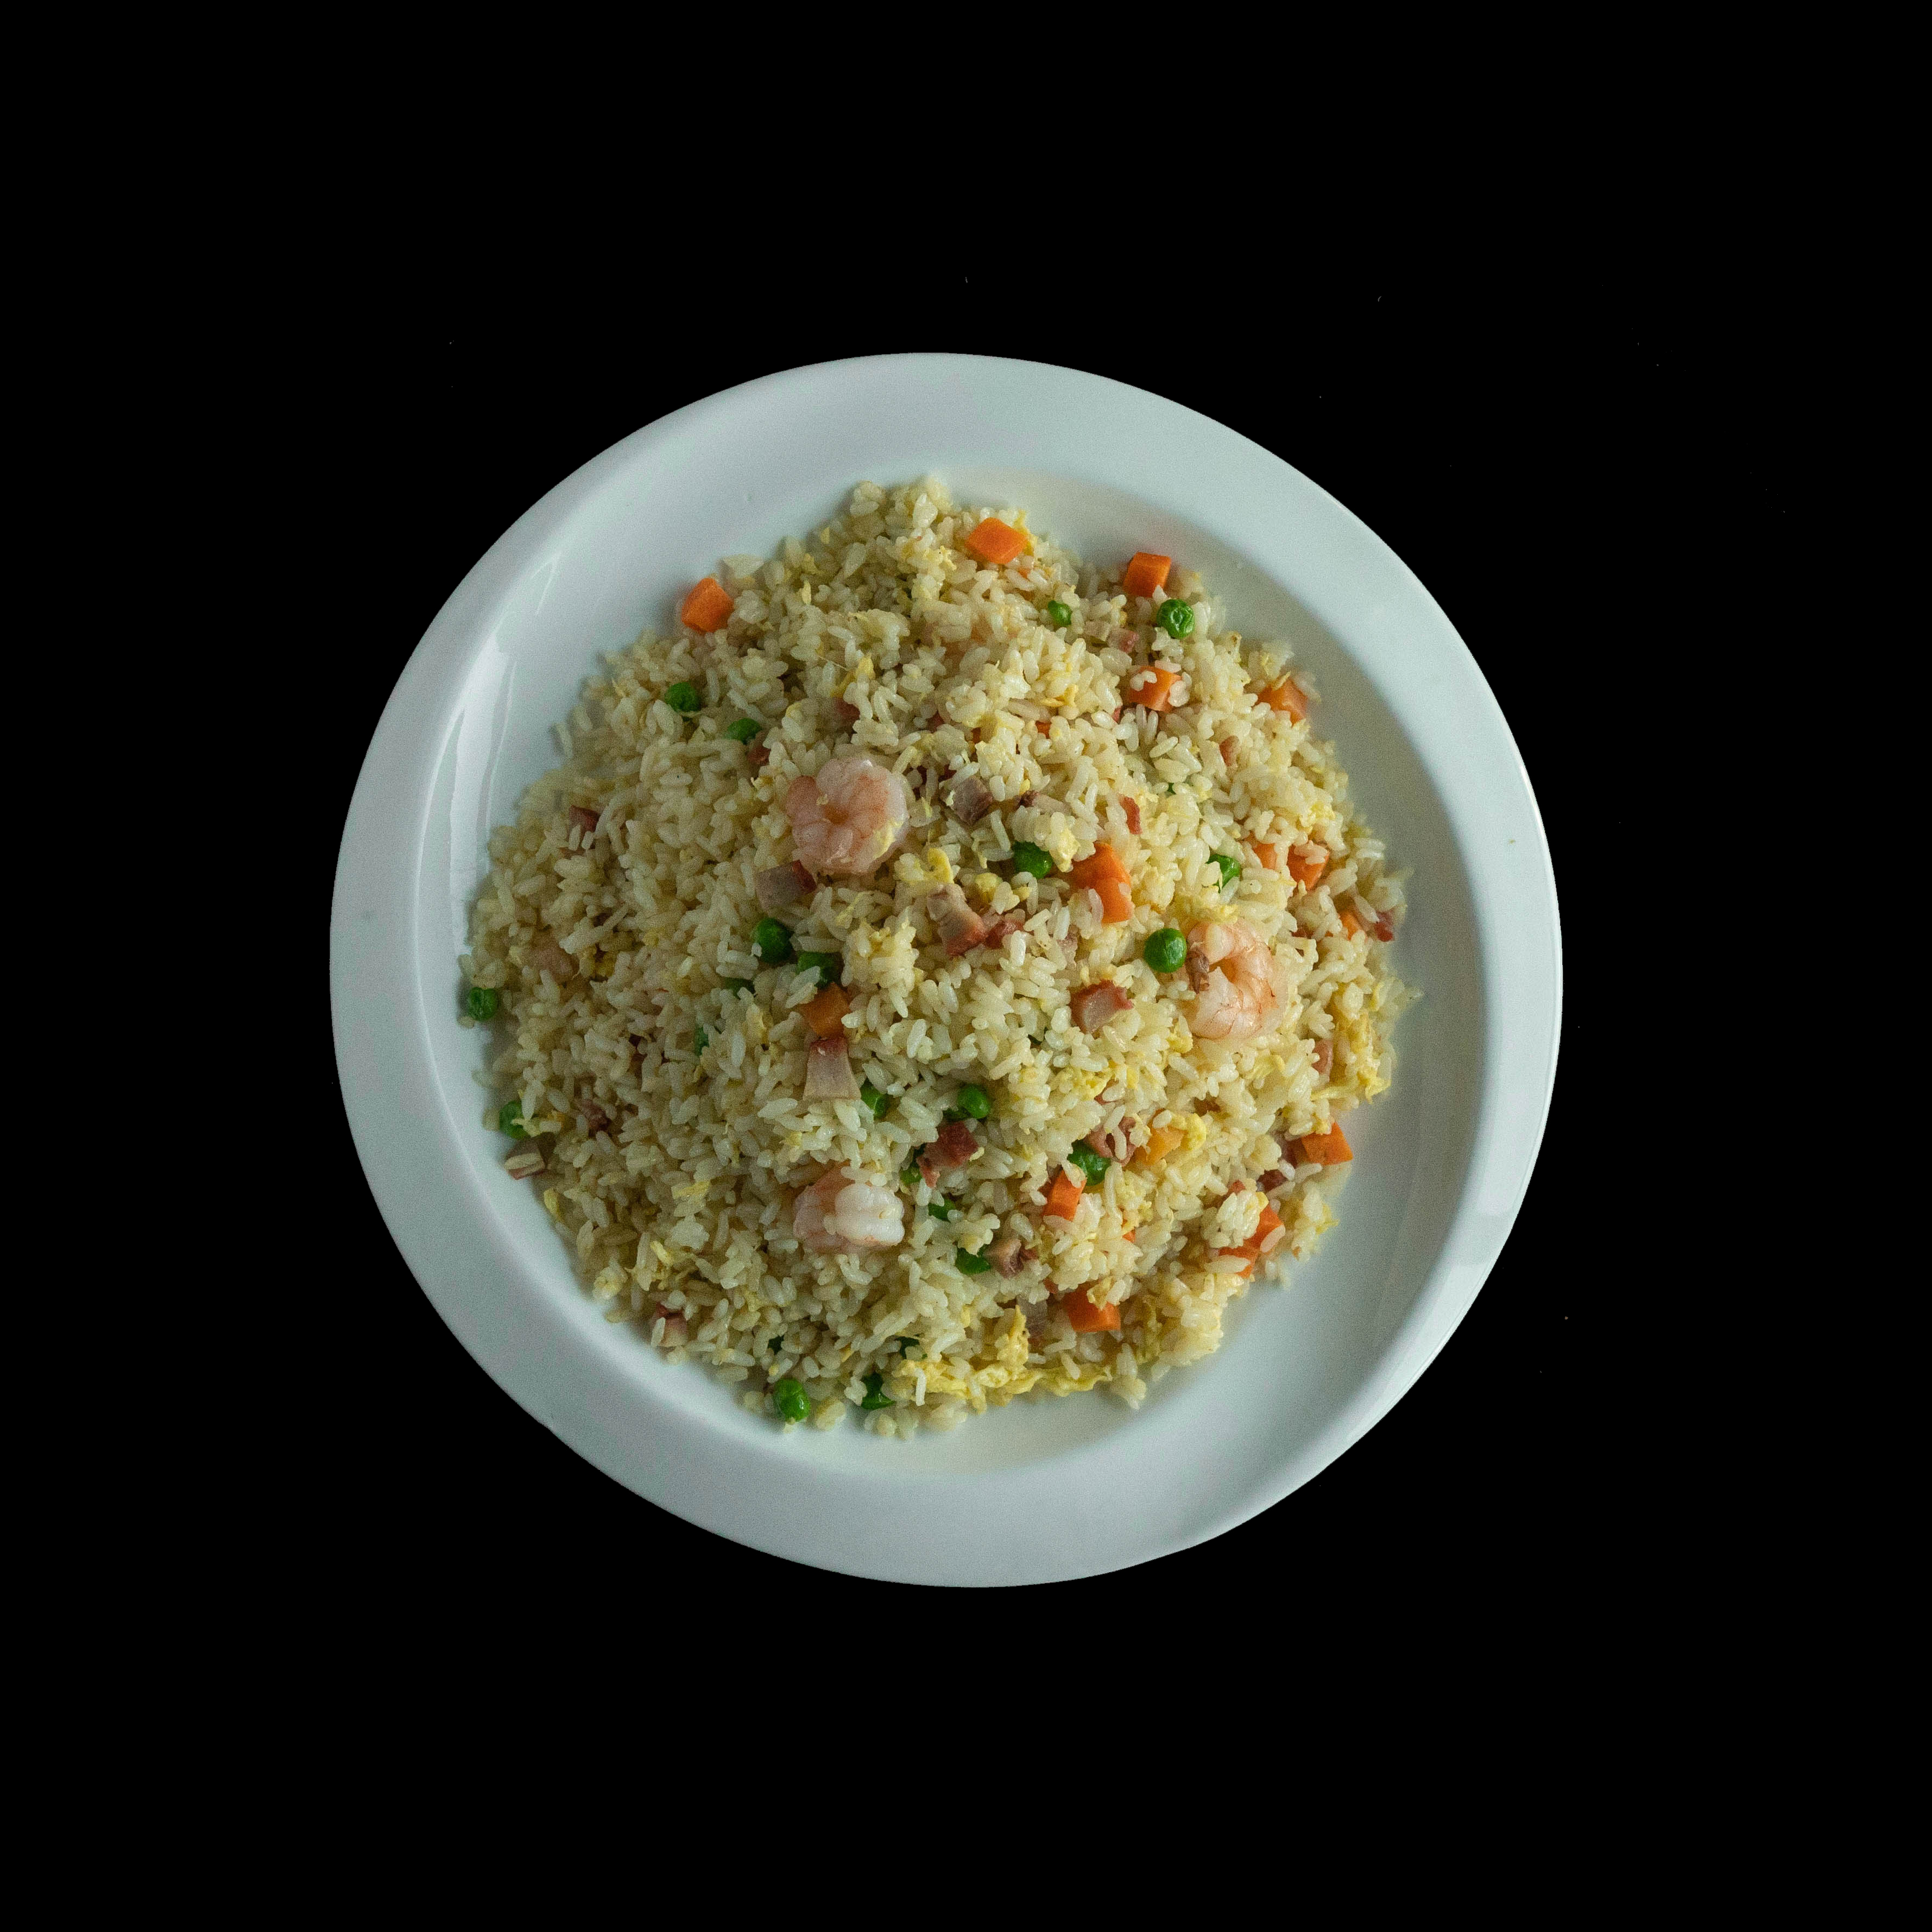 101. 蛋炒饭 Egg Fried Rice Image